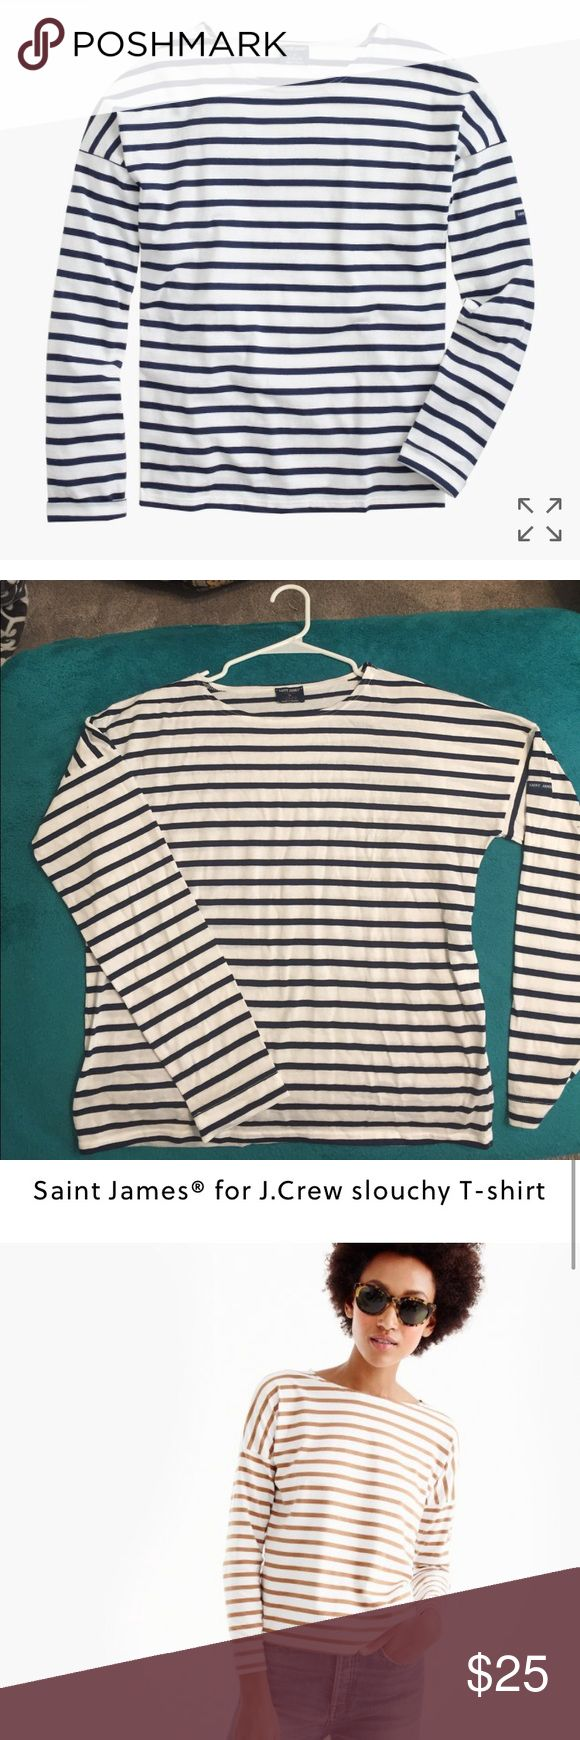 Saint James for J.Crew slouchy T-shirt New no tags.                                                             PRODUCT DETAILS Saint James has been spinning some of the world's finest knits out of its Normandy-based factory since 1889 and has become famous for its Breton shirt, a nautical-inspired style featuring classic stripes. Designed exclusively for us, this airy cotton version features a roomy body and slimmer sleeves.  Cotton. Machine wash. Made in France. Item A1931. J. Crew Tops…